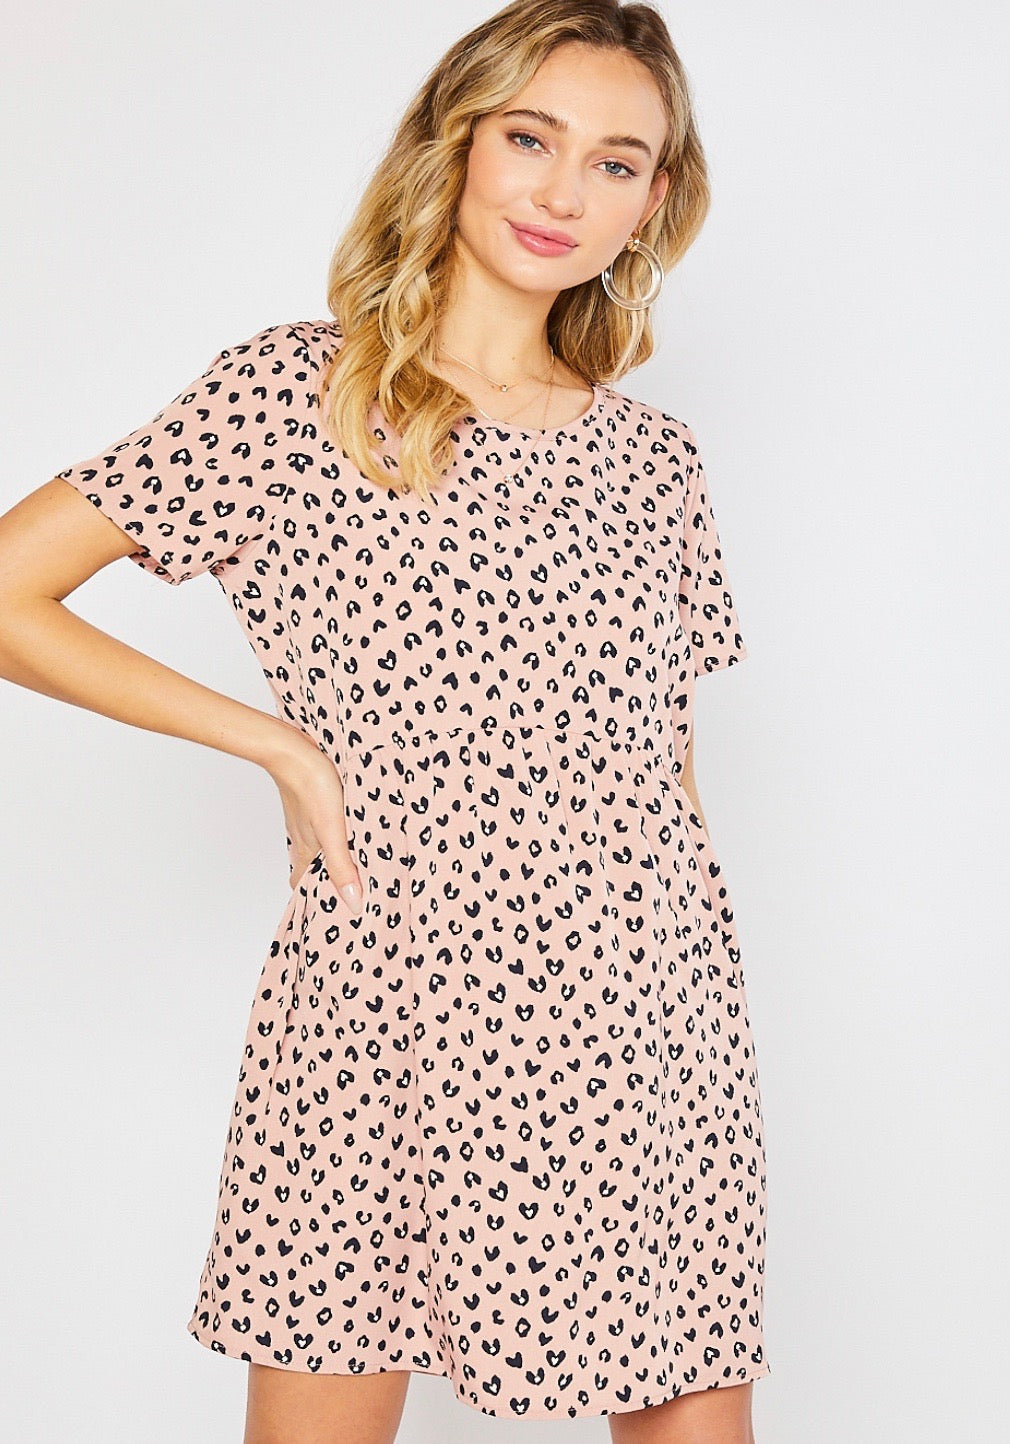 Cheetah Heart Dress